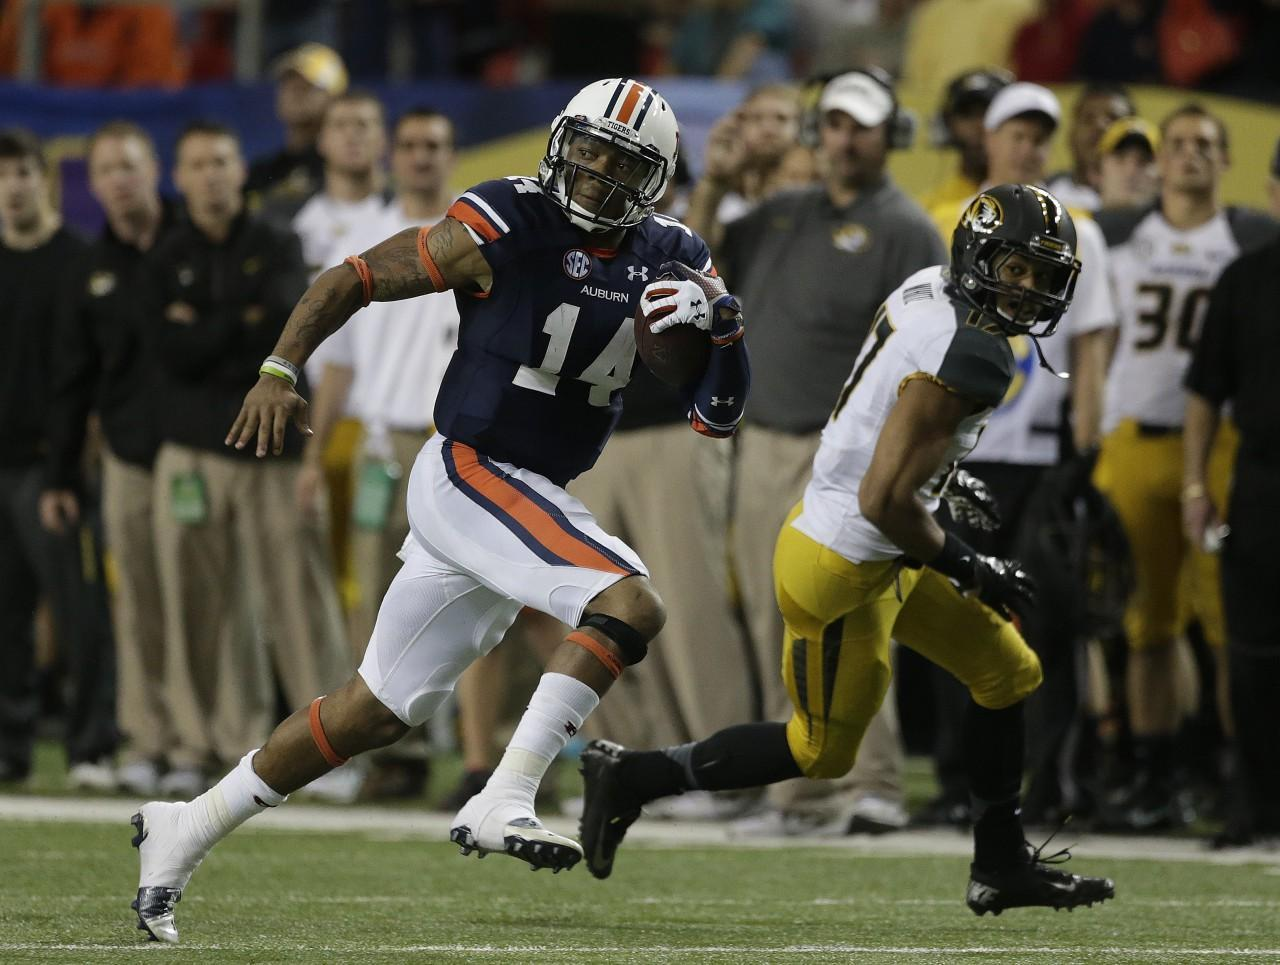 Quarterback Nick Marshall and Auburn will meet Florida State in the BCS Championship. (Dave Martin/AP)